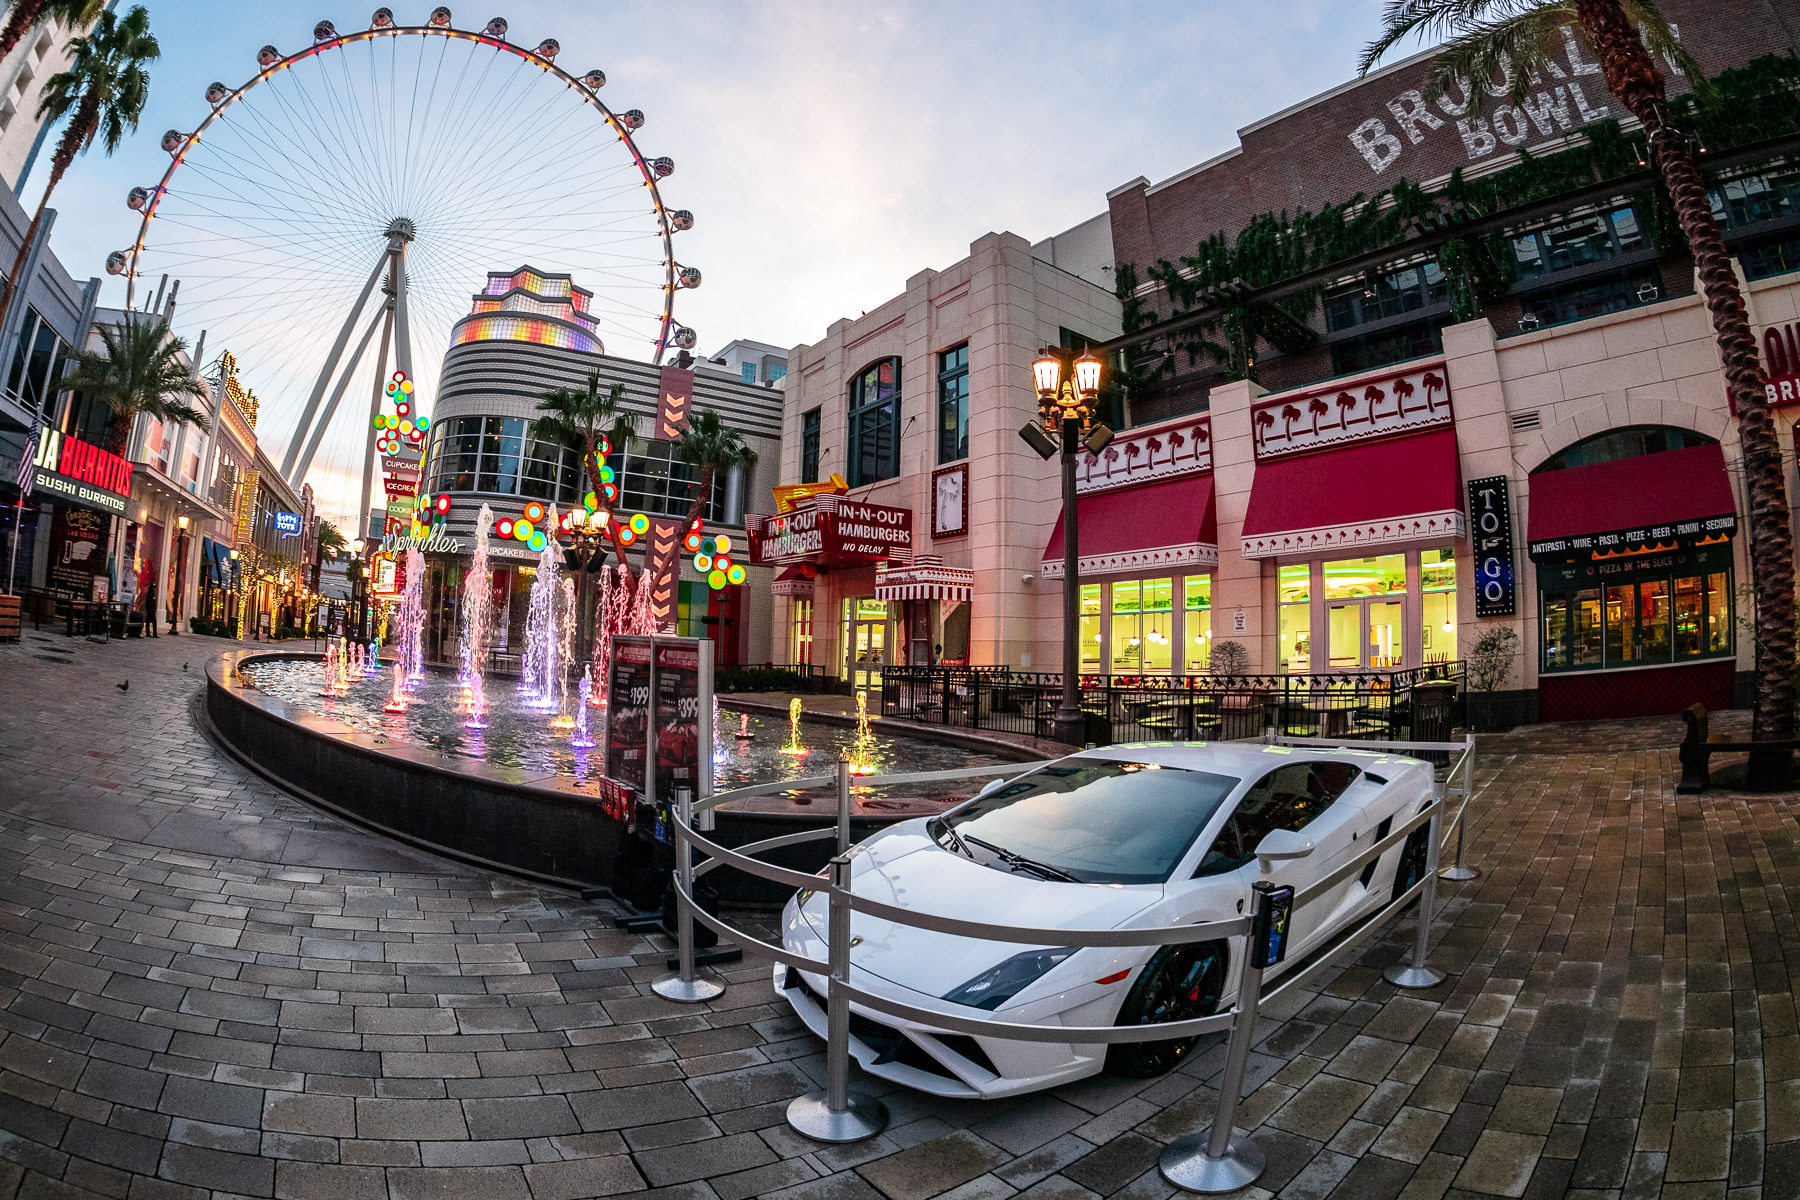 A Lamborghini Gallardo, on display in the early-morning hours at The Linq, Las Vegas.